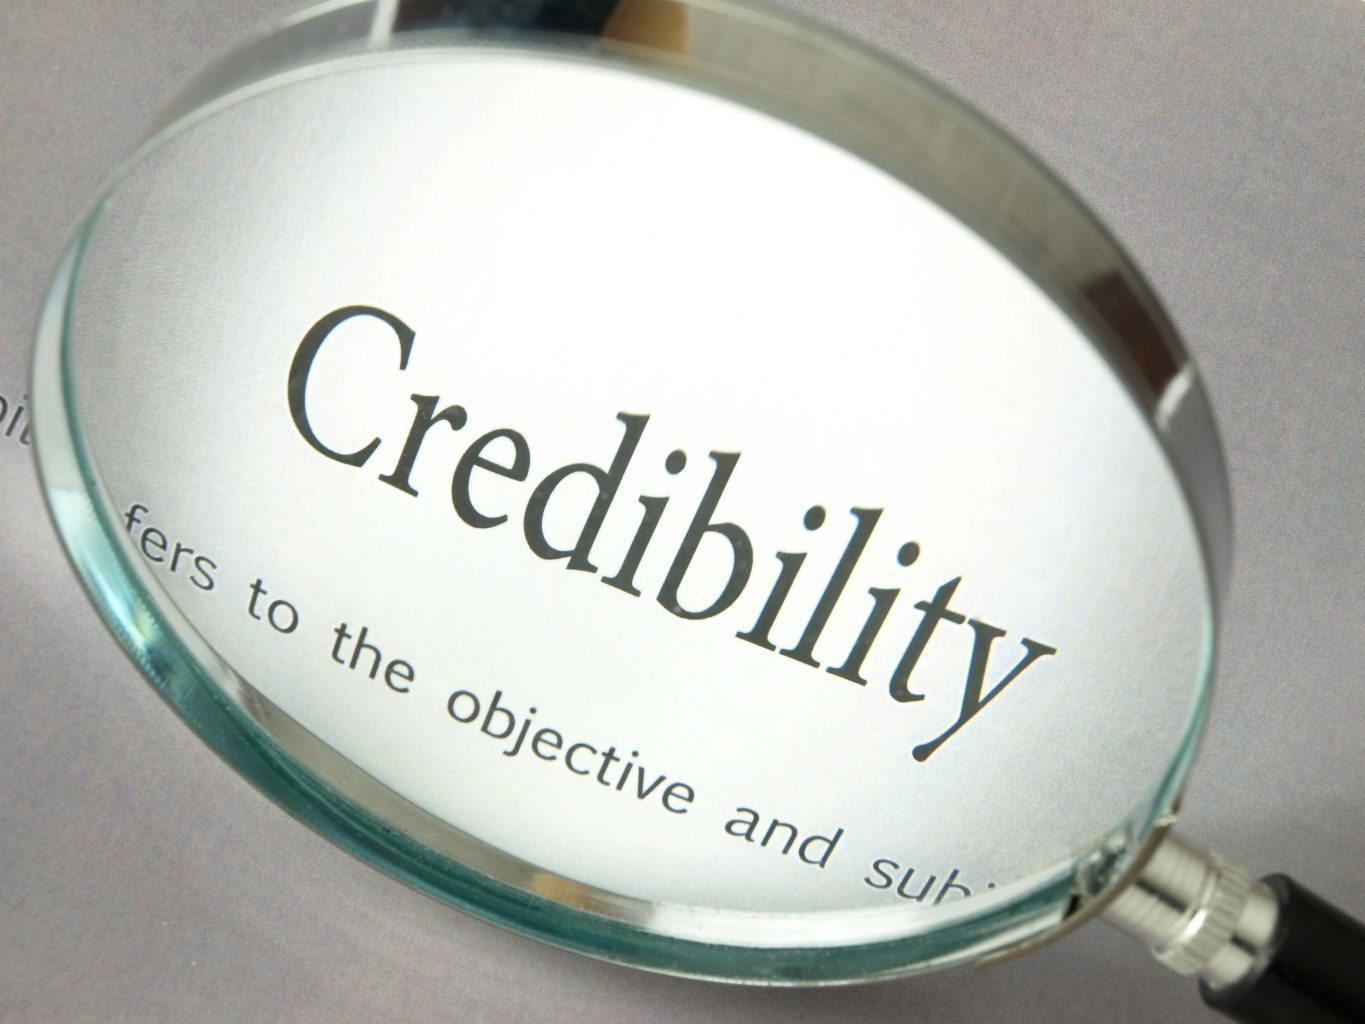 website credibility Start studying source credibility learn vocabulary, terms, and more with flashcards, games, and other study tools.